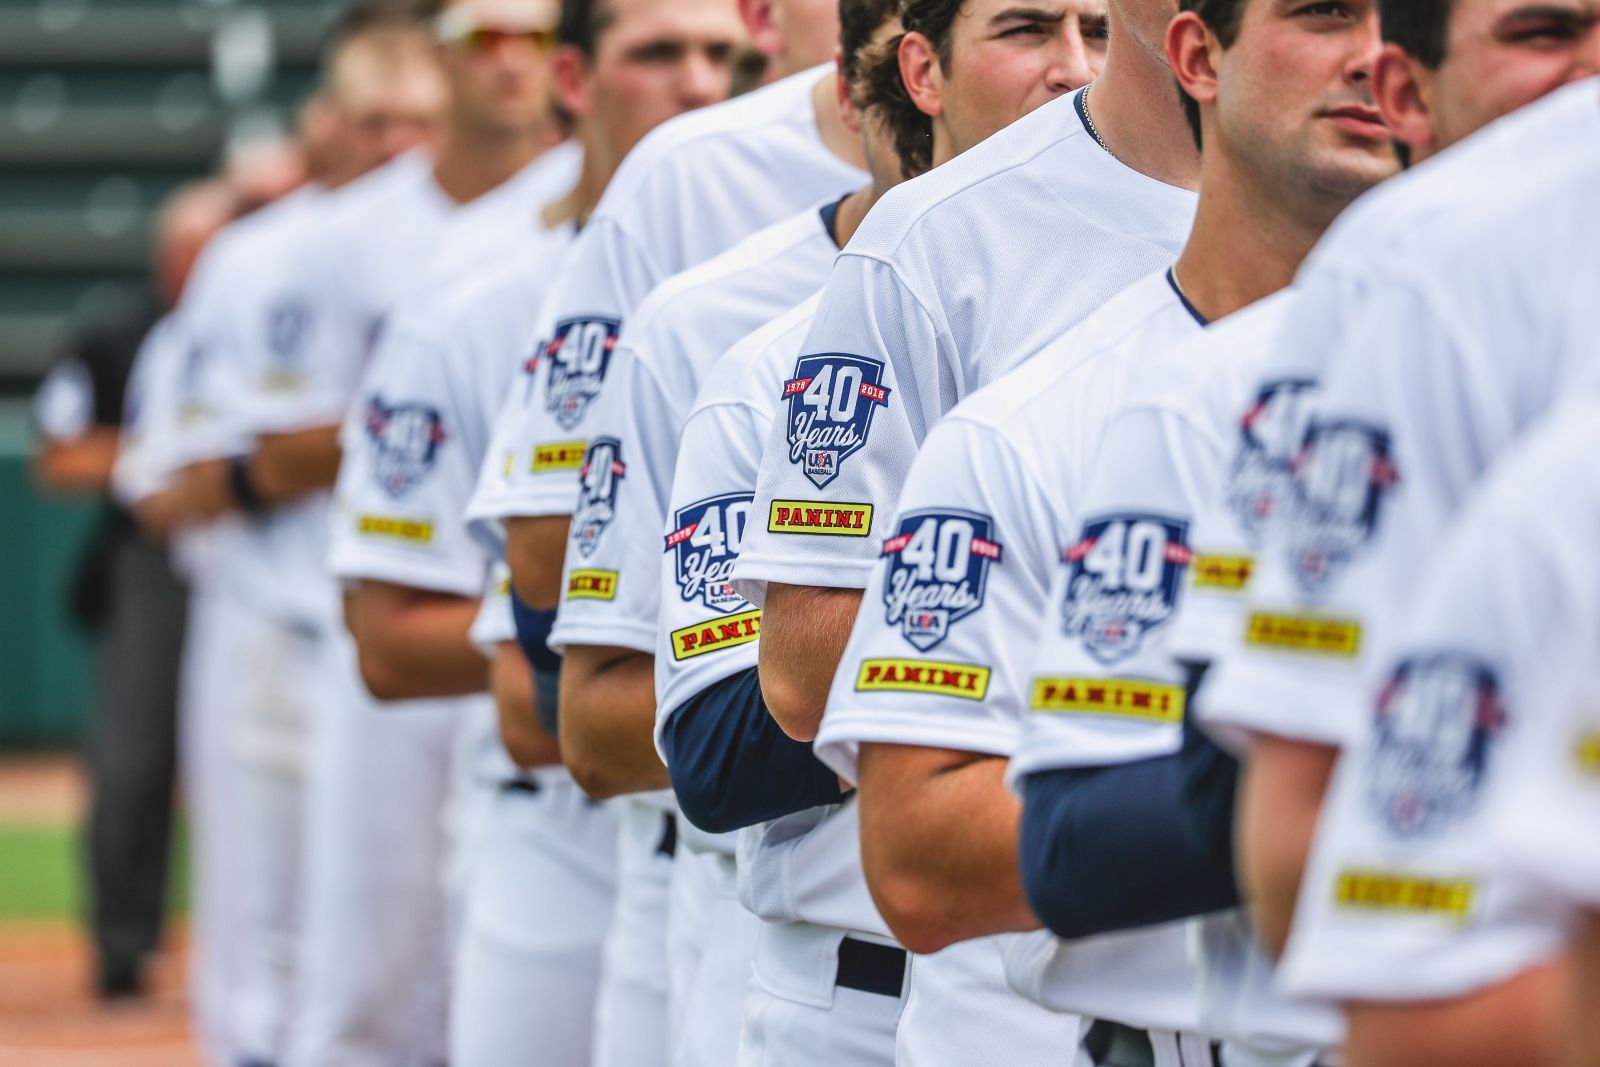 How Well Do You Know Your USA Baseball Facts?